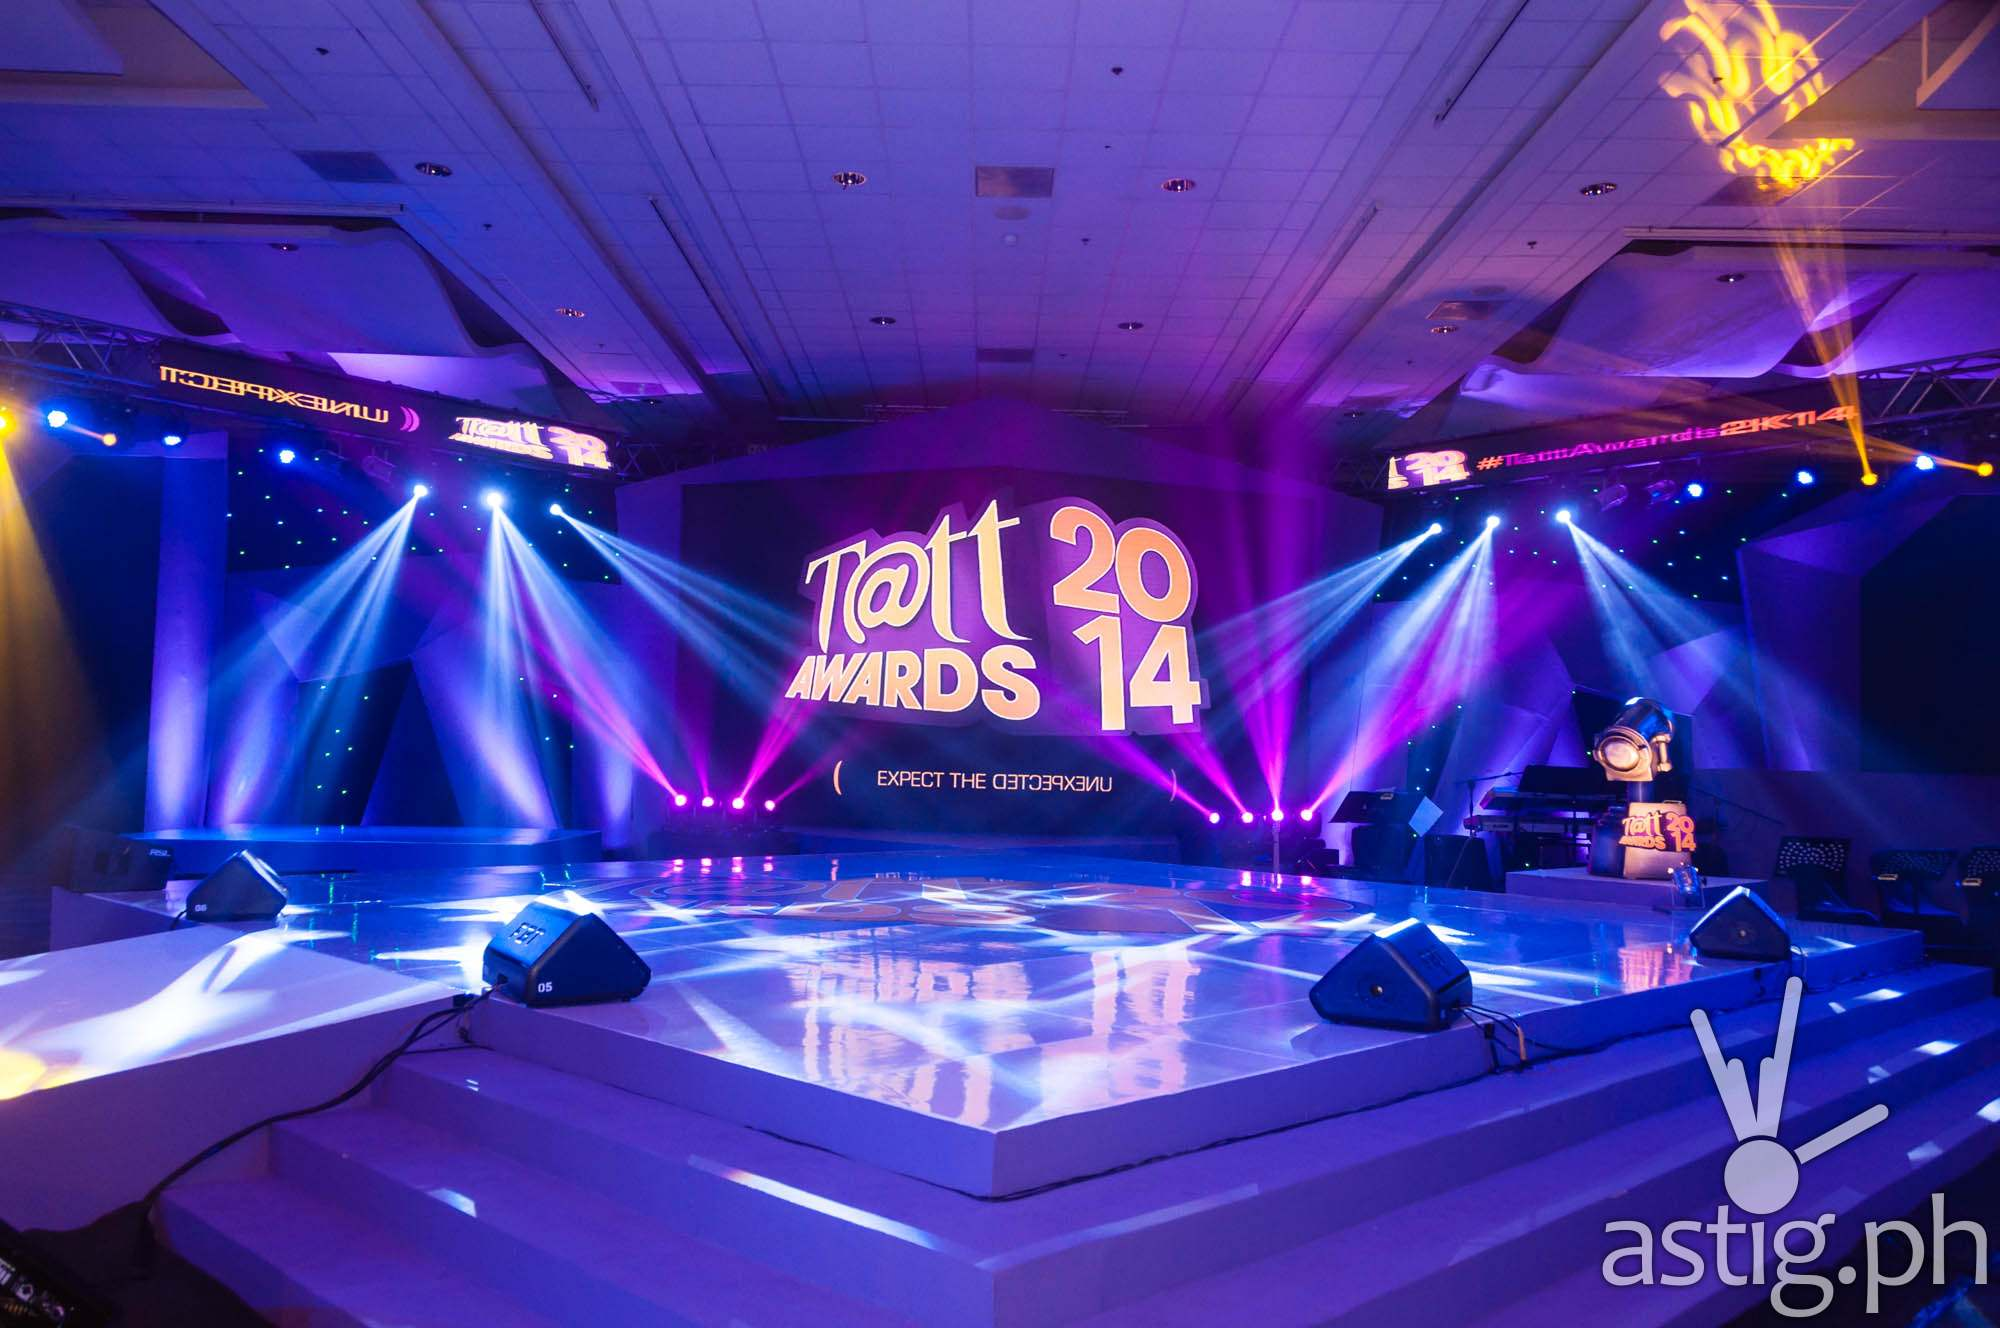 Globe Tatt Awards 2014